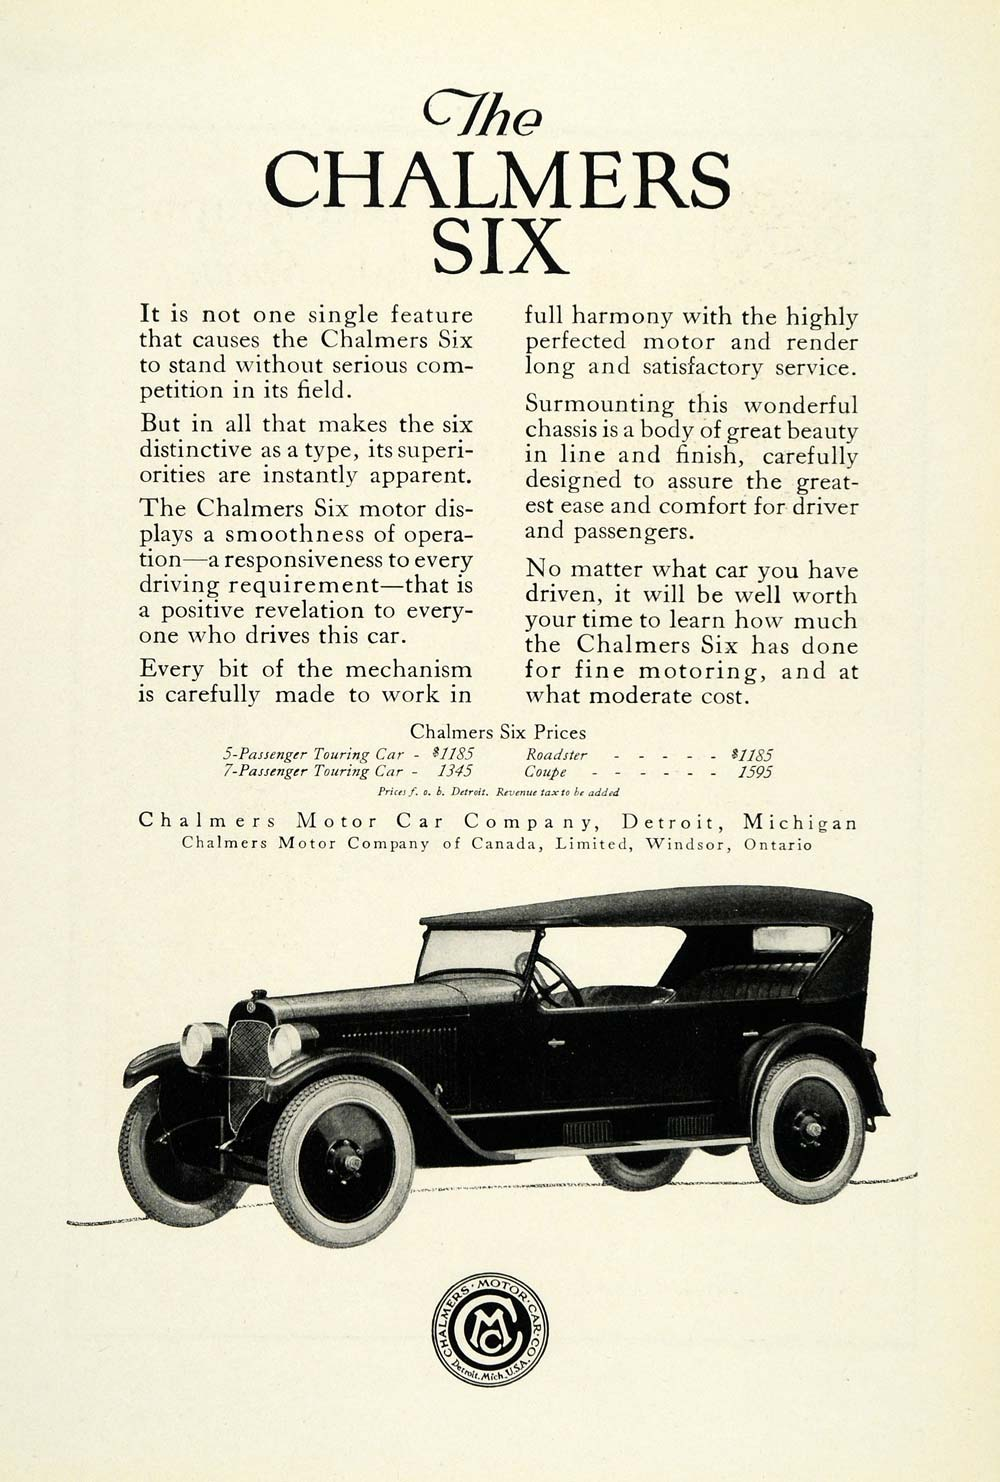 1922 Ad Chalmers Motor Car Six Logo Automobile Vintage Detroit Michigan NGM1